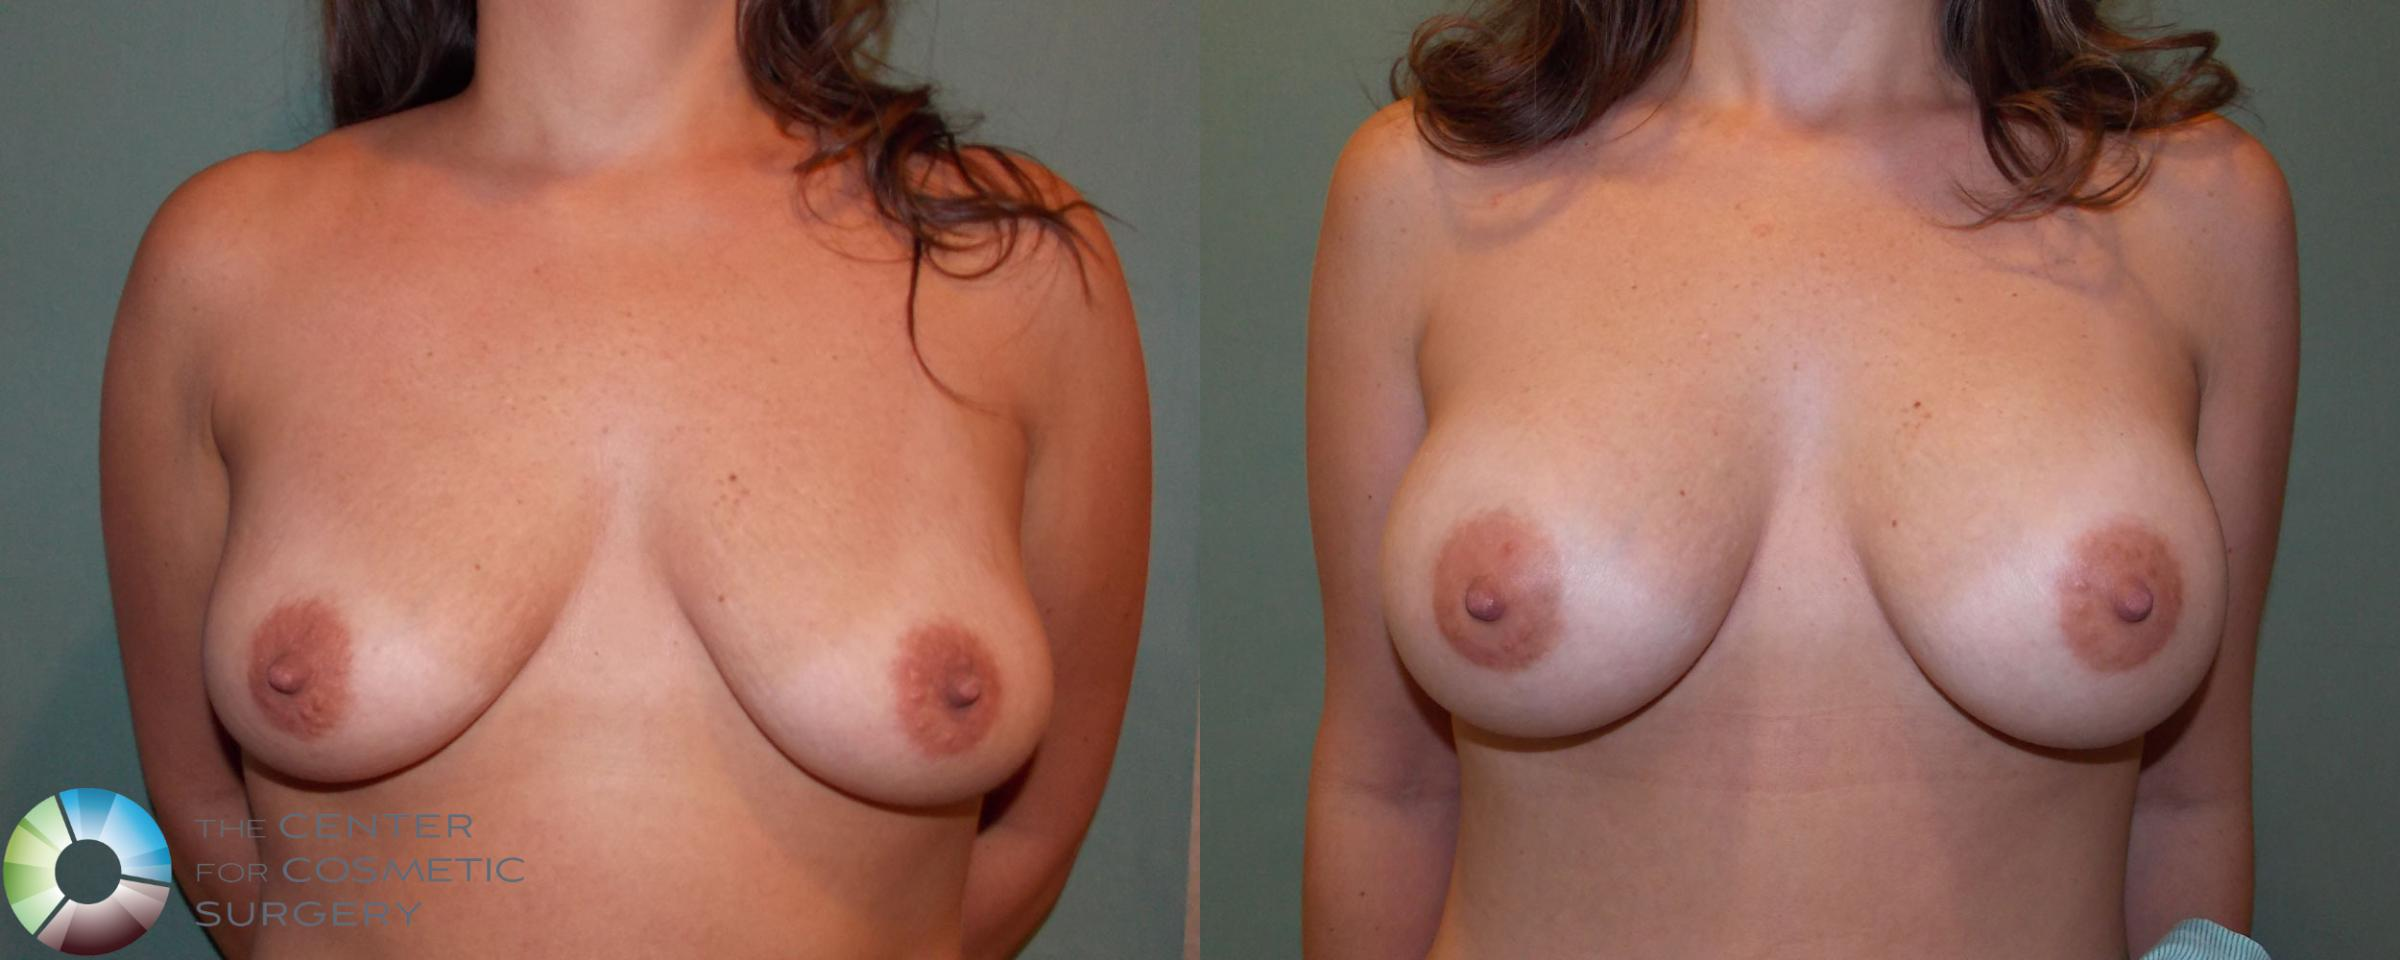 Breast Augmentation Case 682 Before & After View #1 | Golden, CO | The Center for Cosmetic Surgery